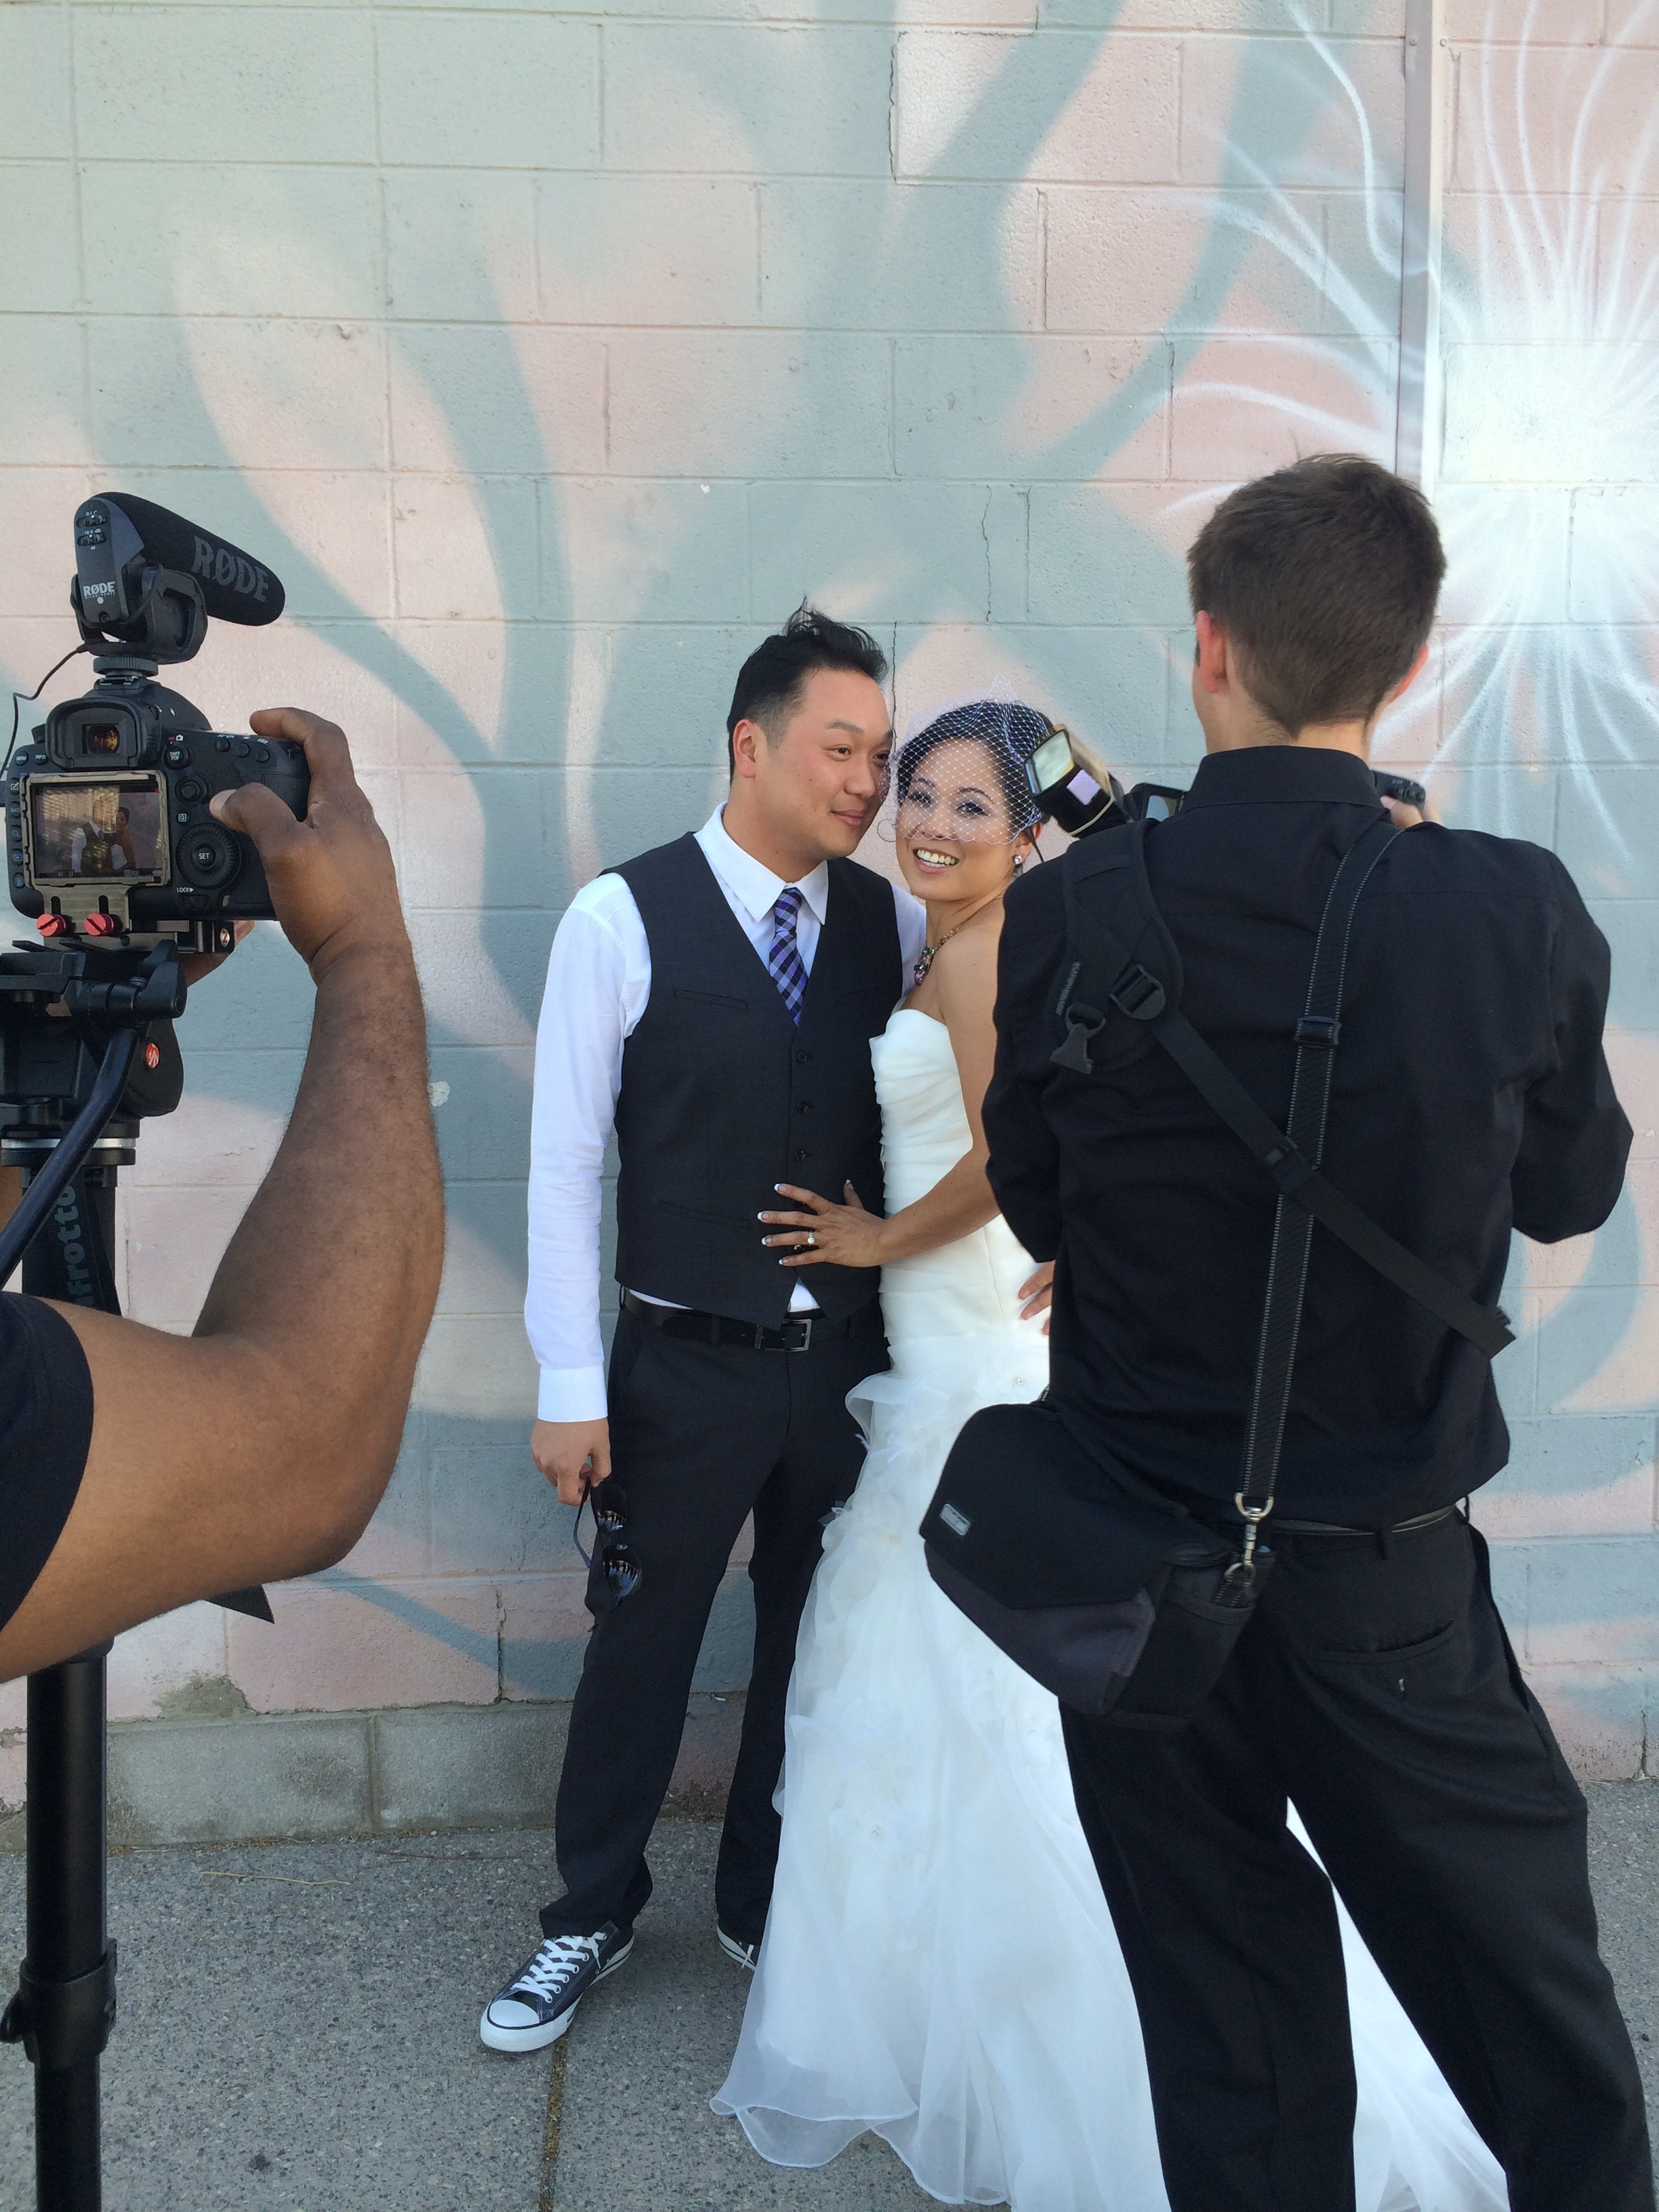 Behind the scenes at a wedding, it's all hands on deck and all work!  Las Vegas Wedding Photographer Adam Frazier, Las Vegas Wedding Videographer Lighten Films, and Photo by Las Vegas Wedding Planner Andrea Eppolito.